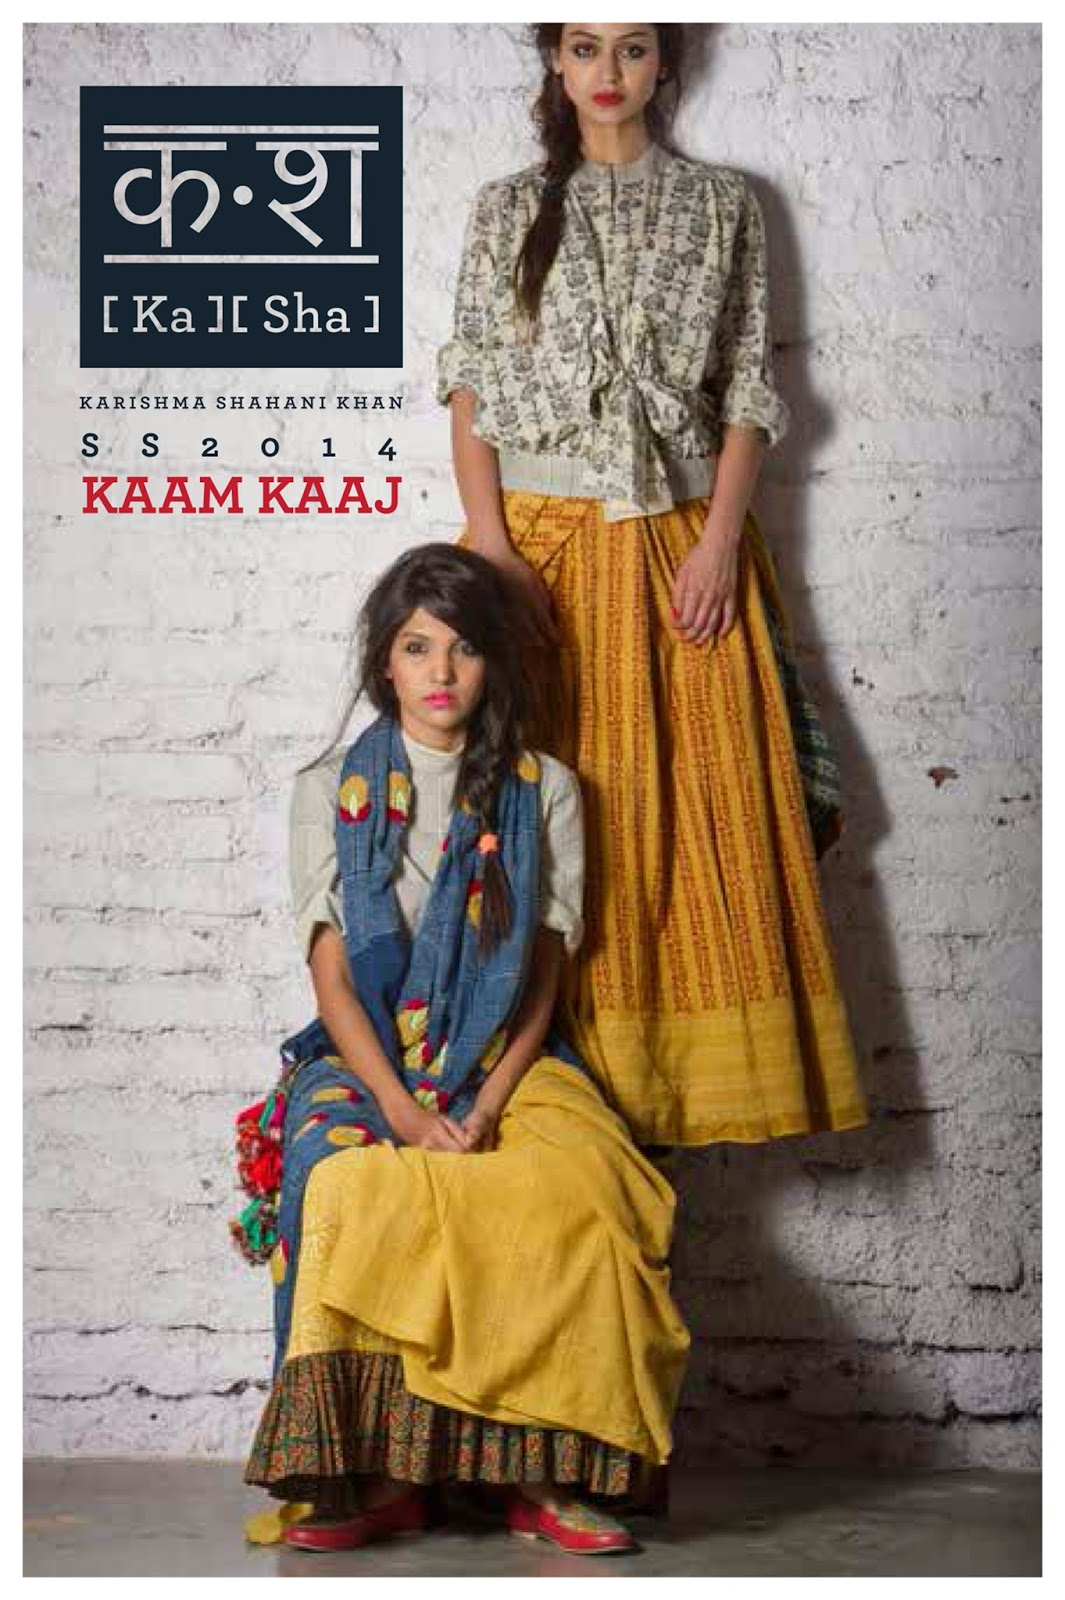 aam Kaaj by Ka Sha in words by Karishma Shahani